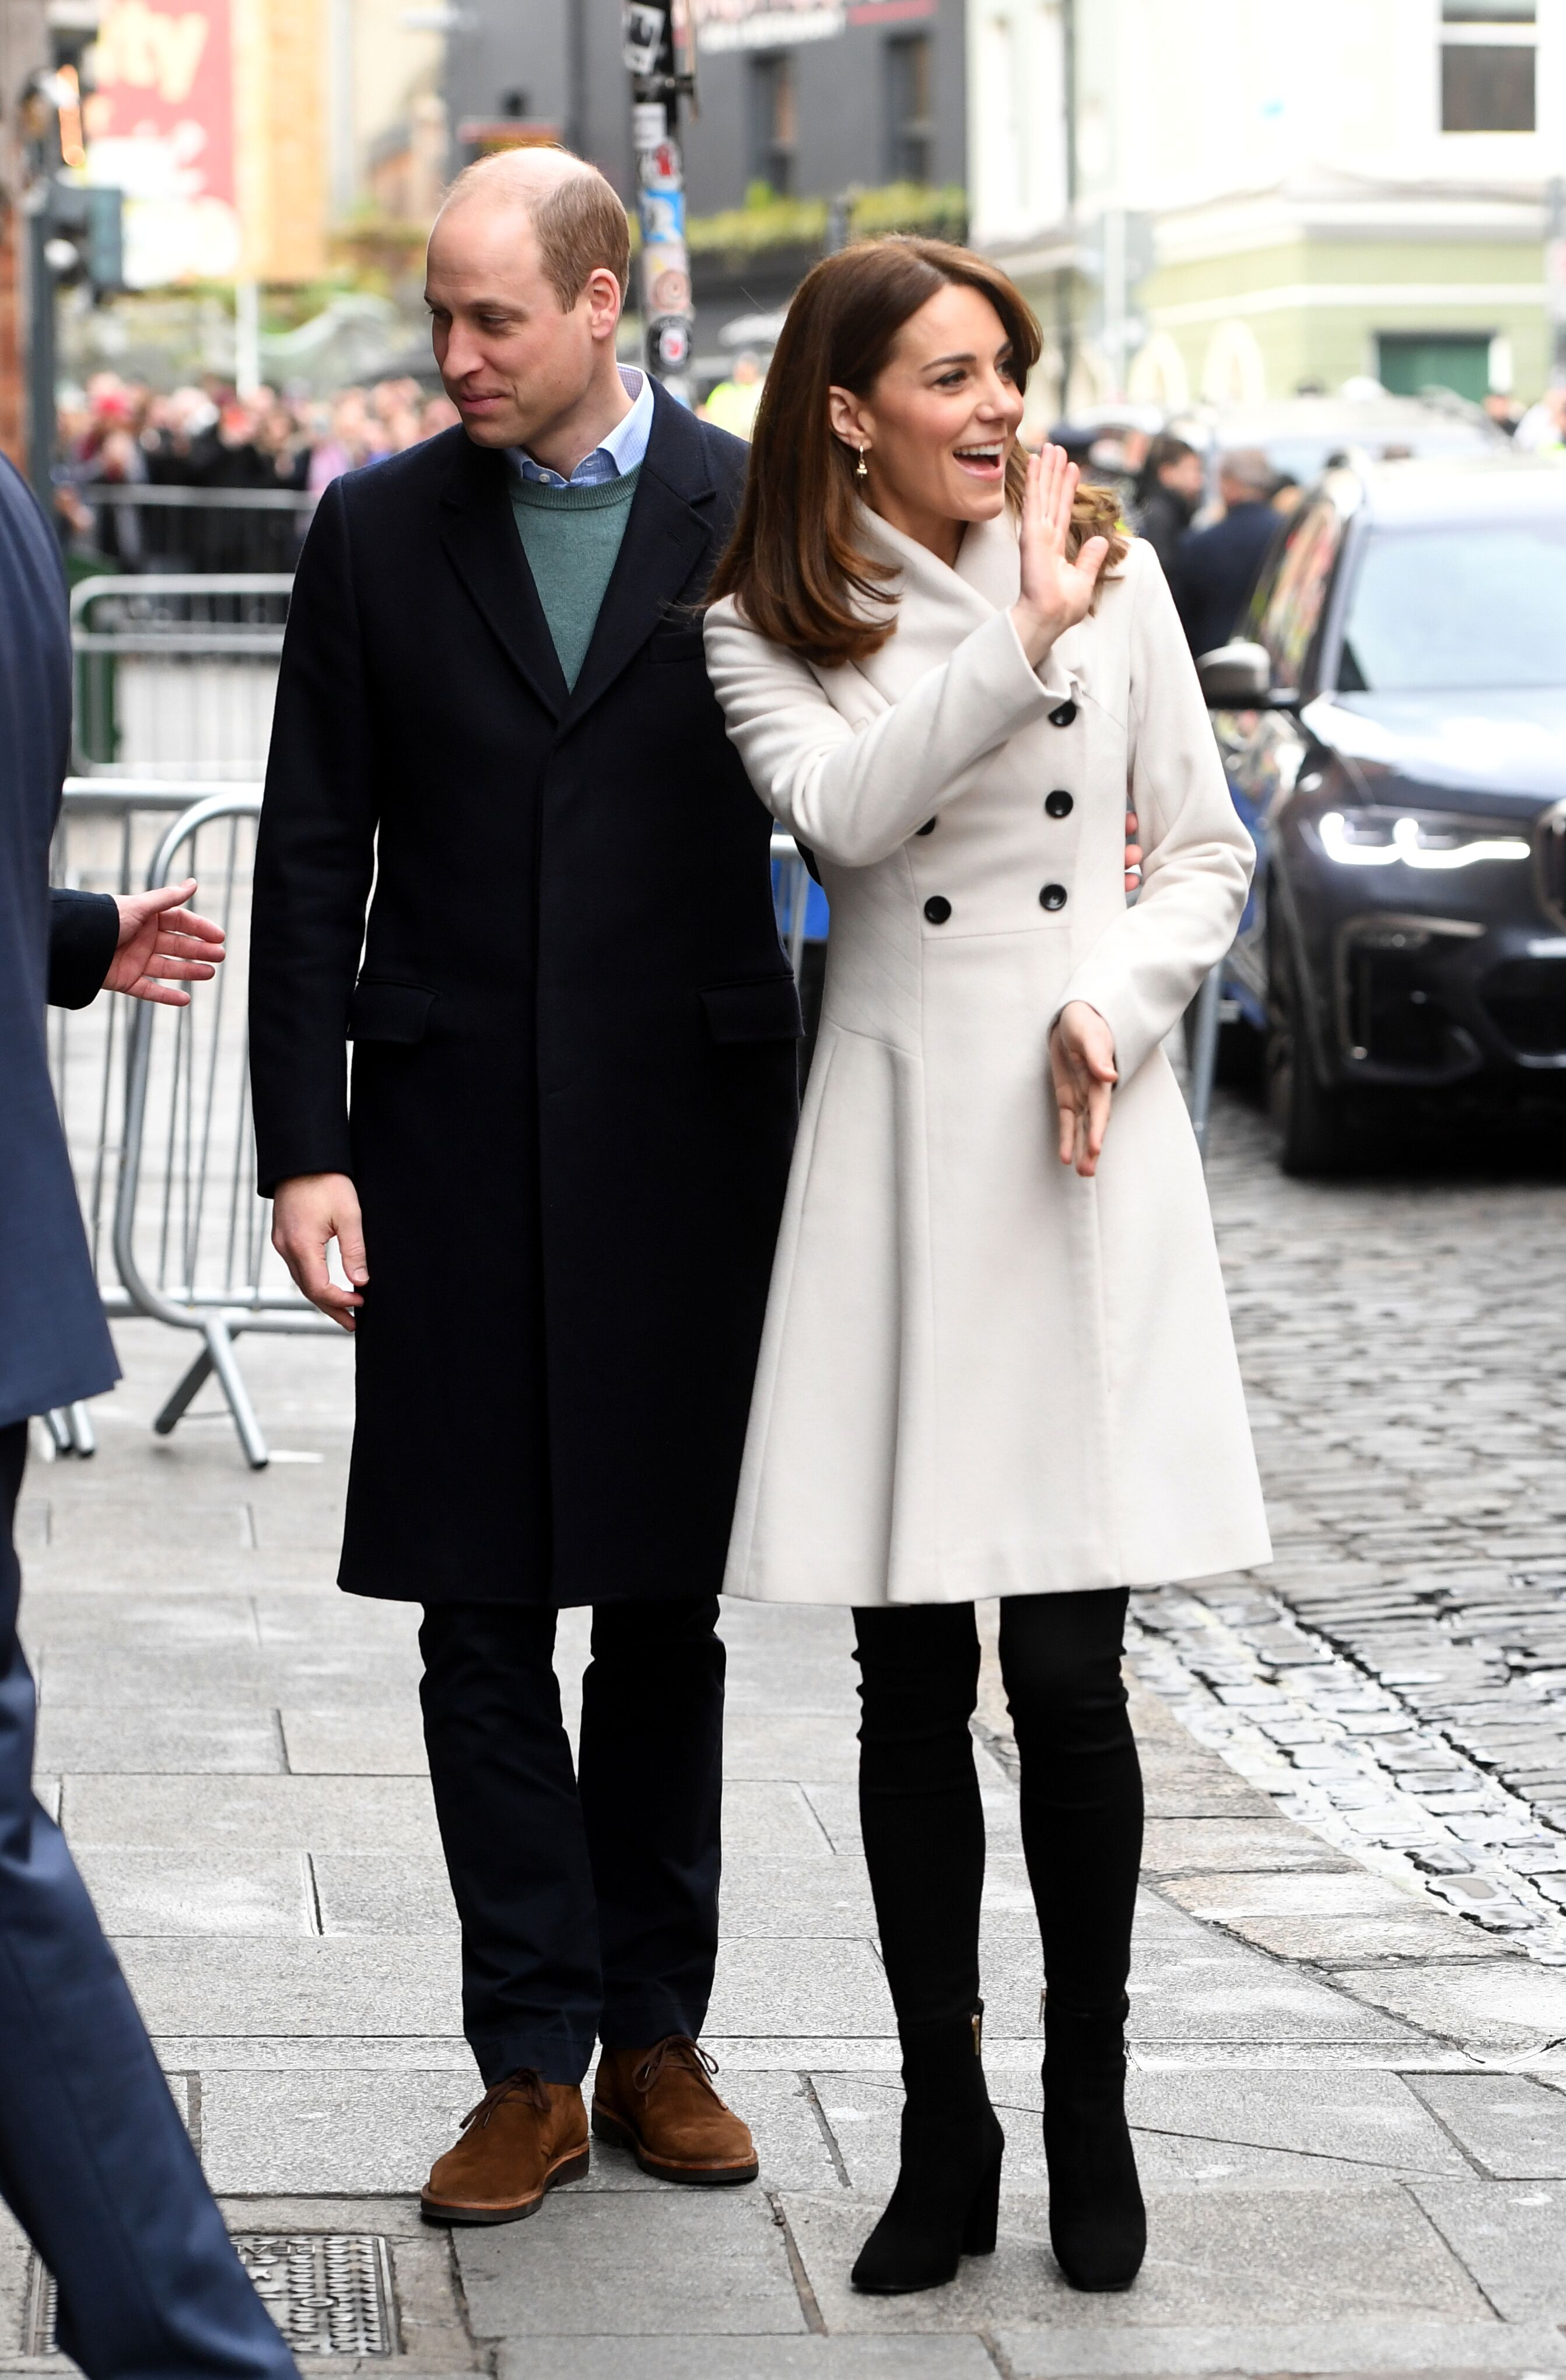 Prince William and Duchess Kate visit Jigsaw during day two of their visit to Ireland on March 04, 2020, in Dublin. | Source: Getty Images